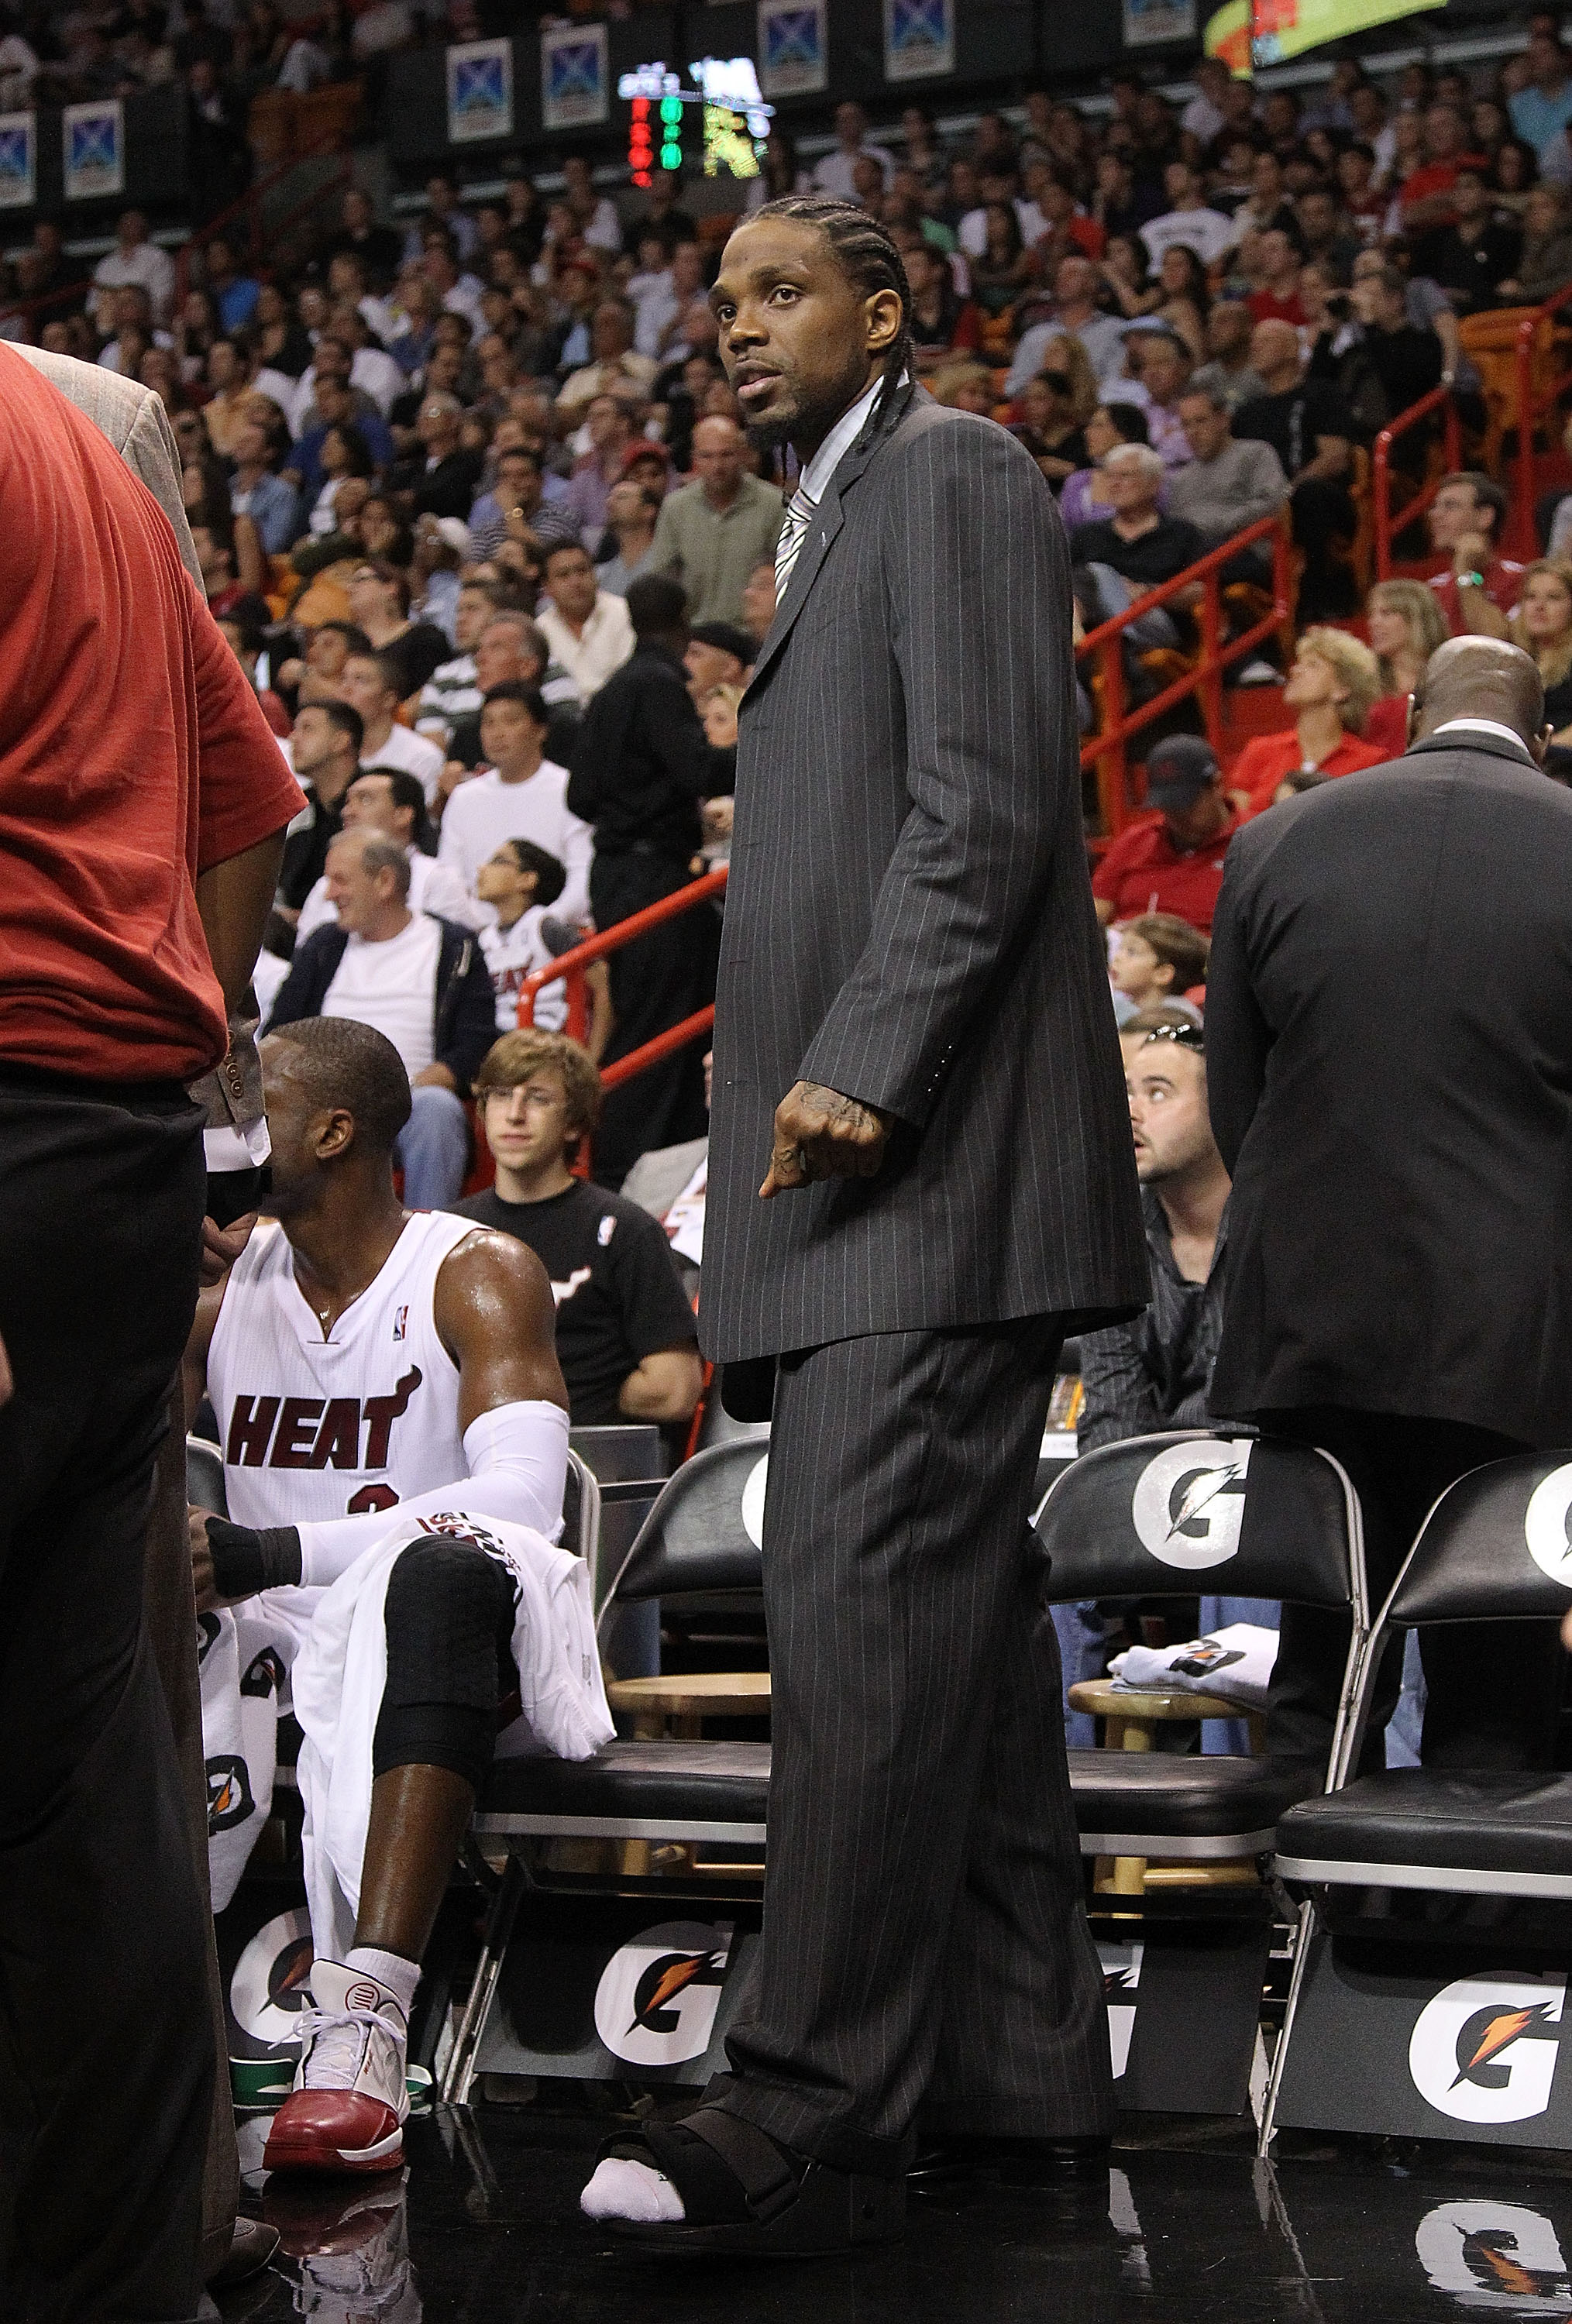 The Heat will need Udonis Haslem to have a full recovery to win the East